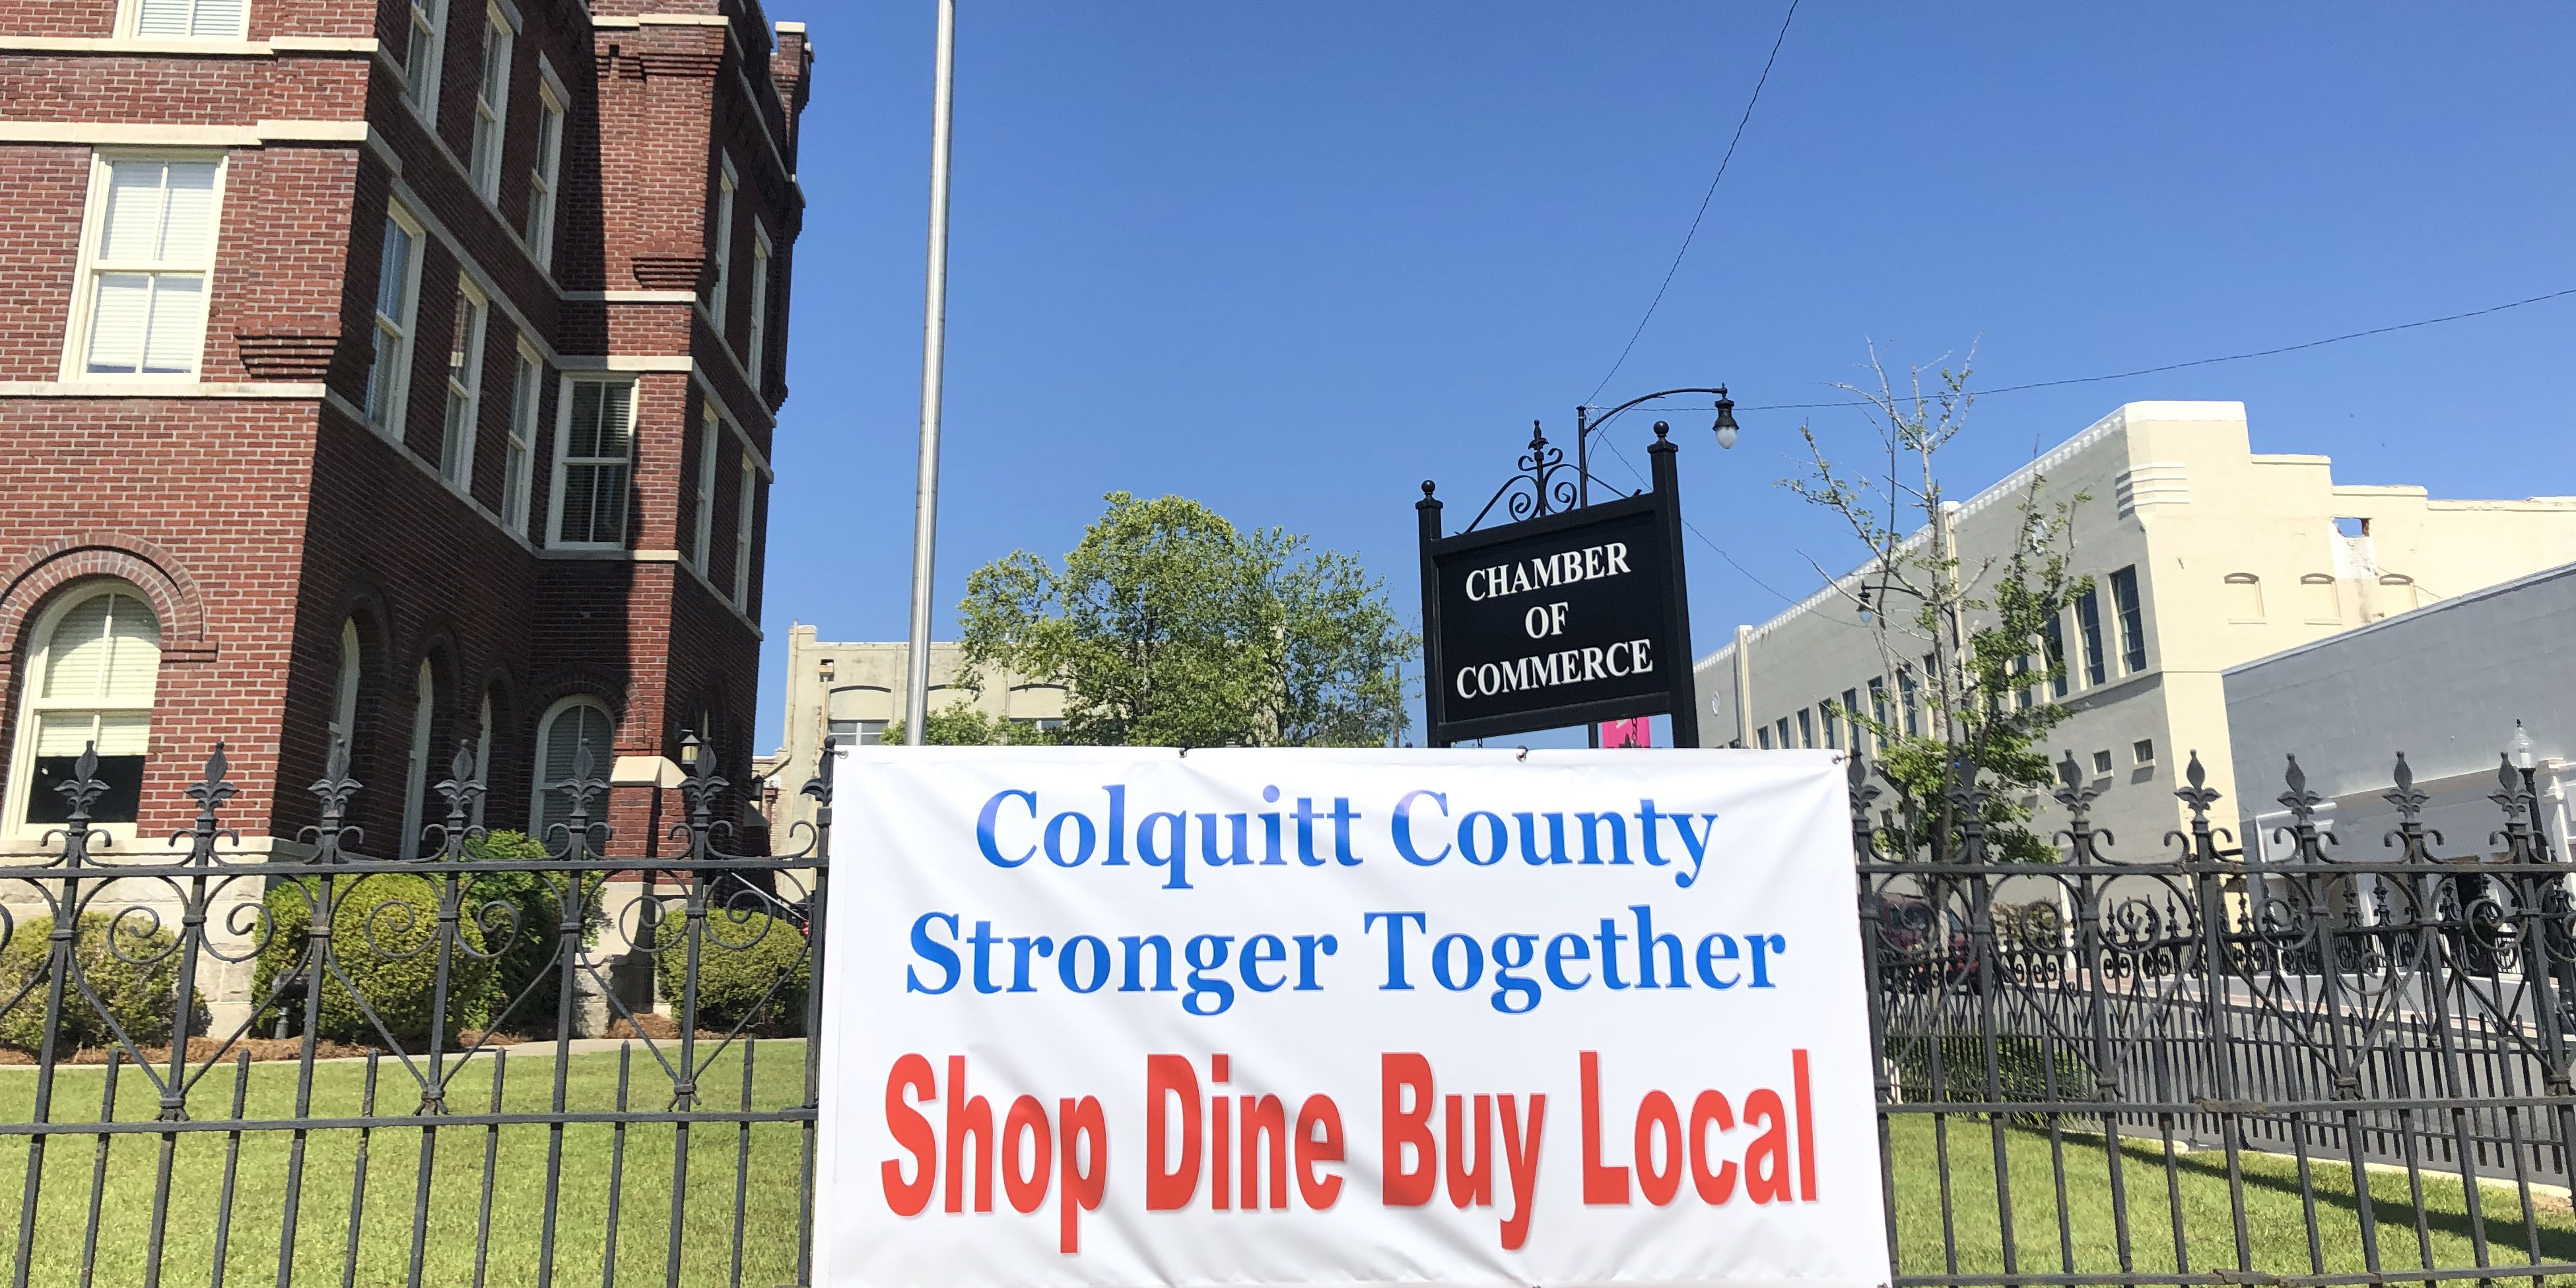 Moultrie leaders encourage local shopping as economy reopens